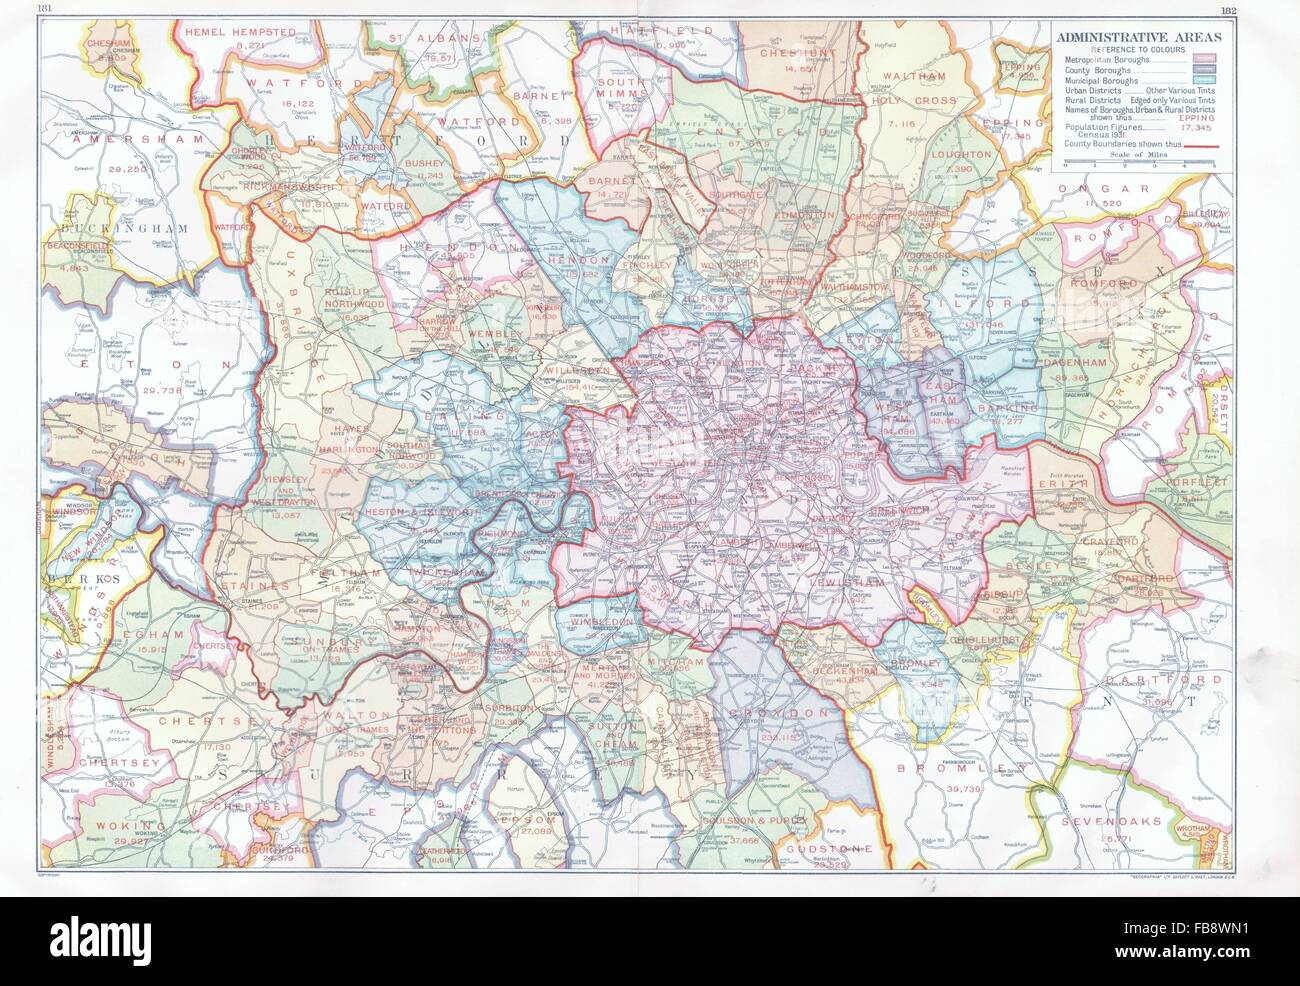 Map Of London Boroughs Stock Photos & Map Of London Boroughs ... Map London Districts on london neighborhoods to avoid, hampstead map, london home map, london w1, ri district map, london area map, london post code map, ha postal area, london neighbourhoods map, london eye, city of london, london city districts, city of london map, london soho district, major london attractions map, cr postal area, uk postcodes, city of westminster, en postal area, london activities map, ok district map, london city map printable, n postcode area, london neighborhood map, victoria, london, london road map, london street map detailed, se postcode area, london borough of greenwich, london underground, soho london map, greater london, london tube, ig postal area, london economy map,